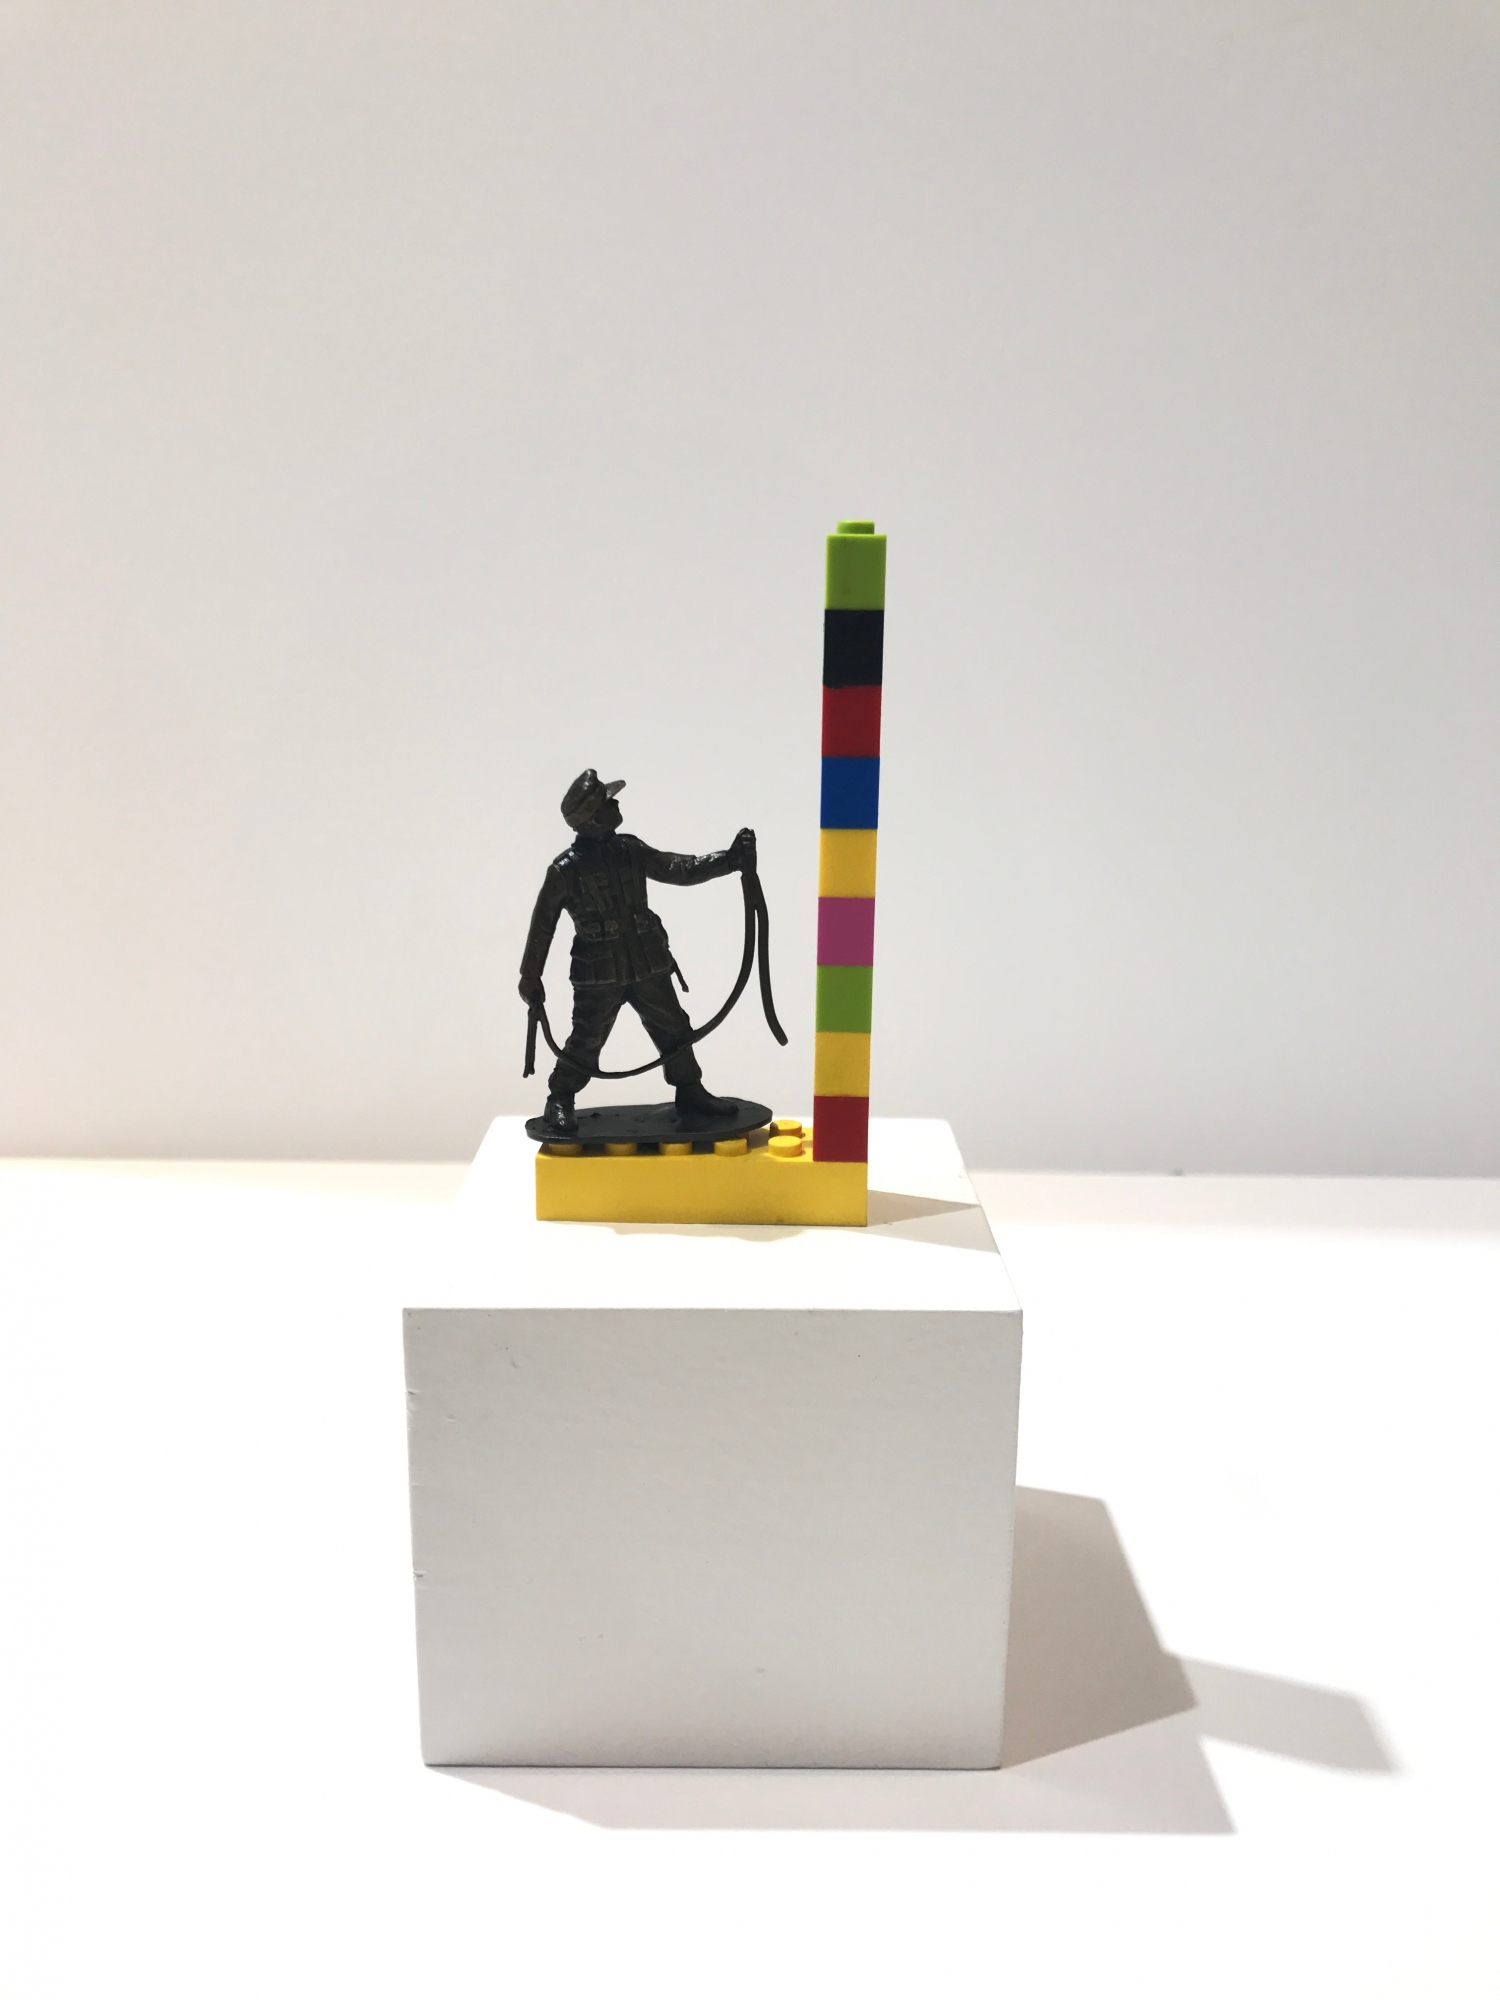 Lego Climber by Roch  Smith